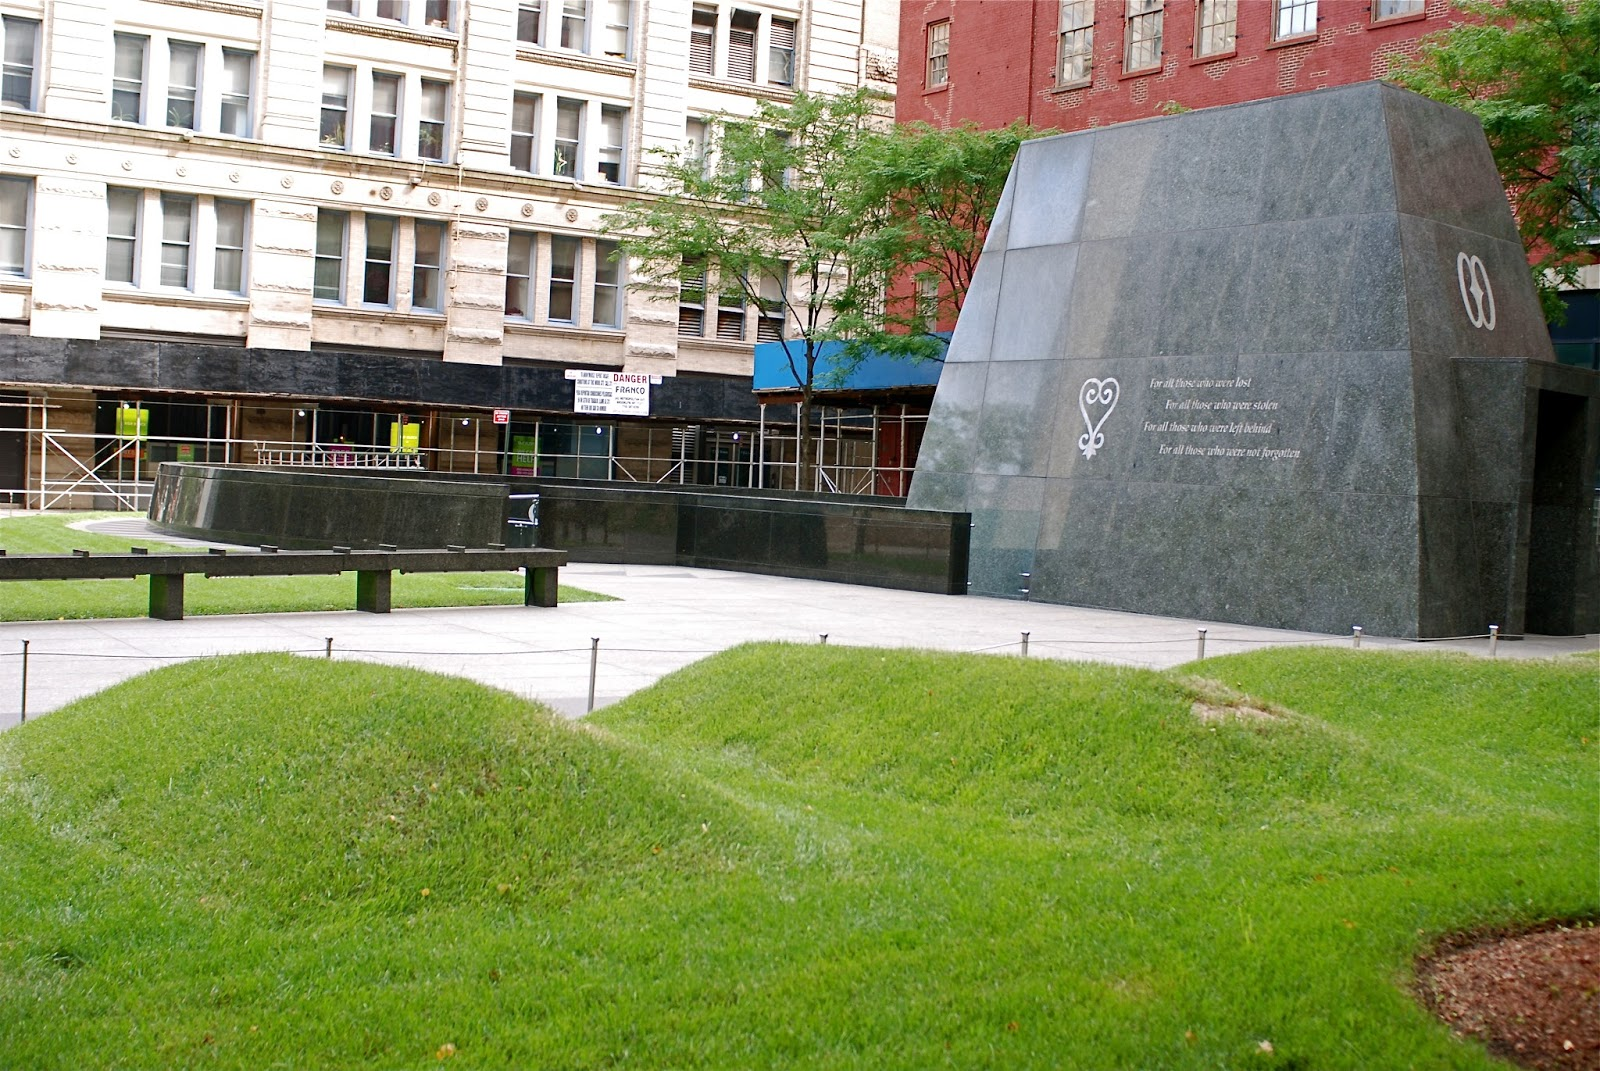 The Daily Show with Trevor Noah New York City, NYC ♥ NYC: African Burial Ground - A Sacred Space in Manhattan ...